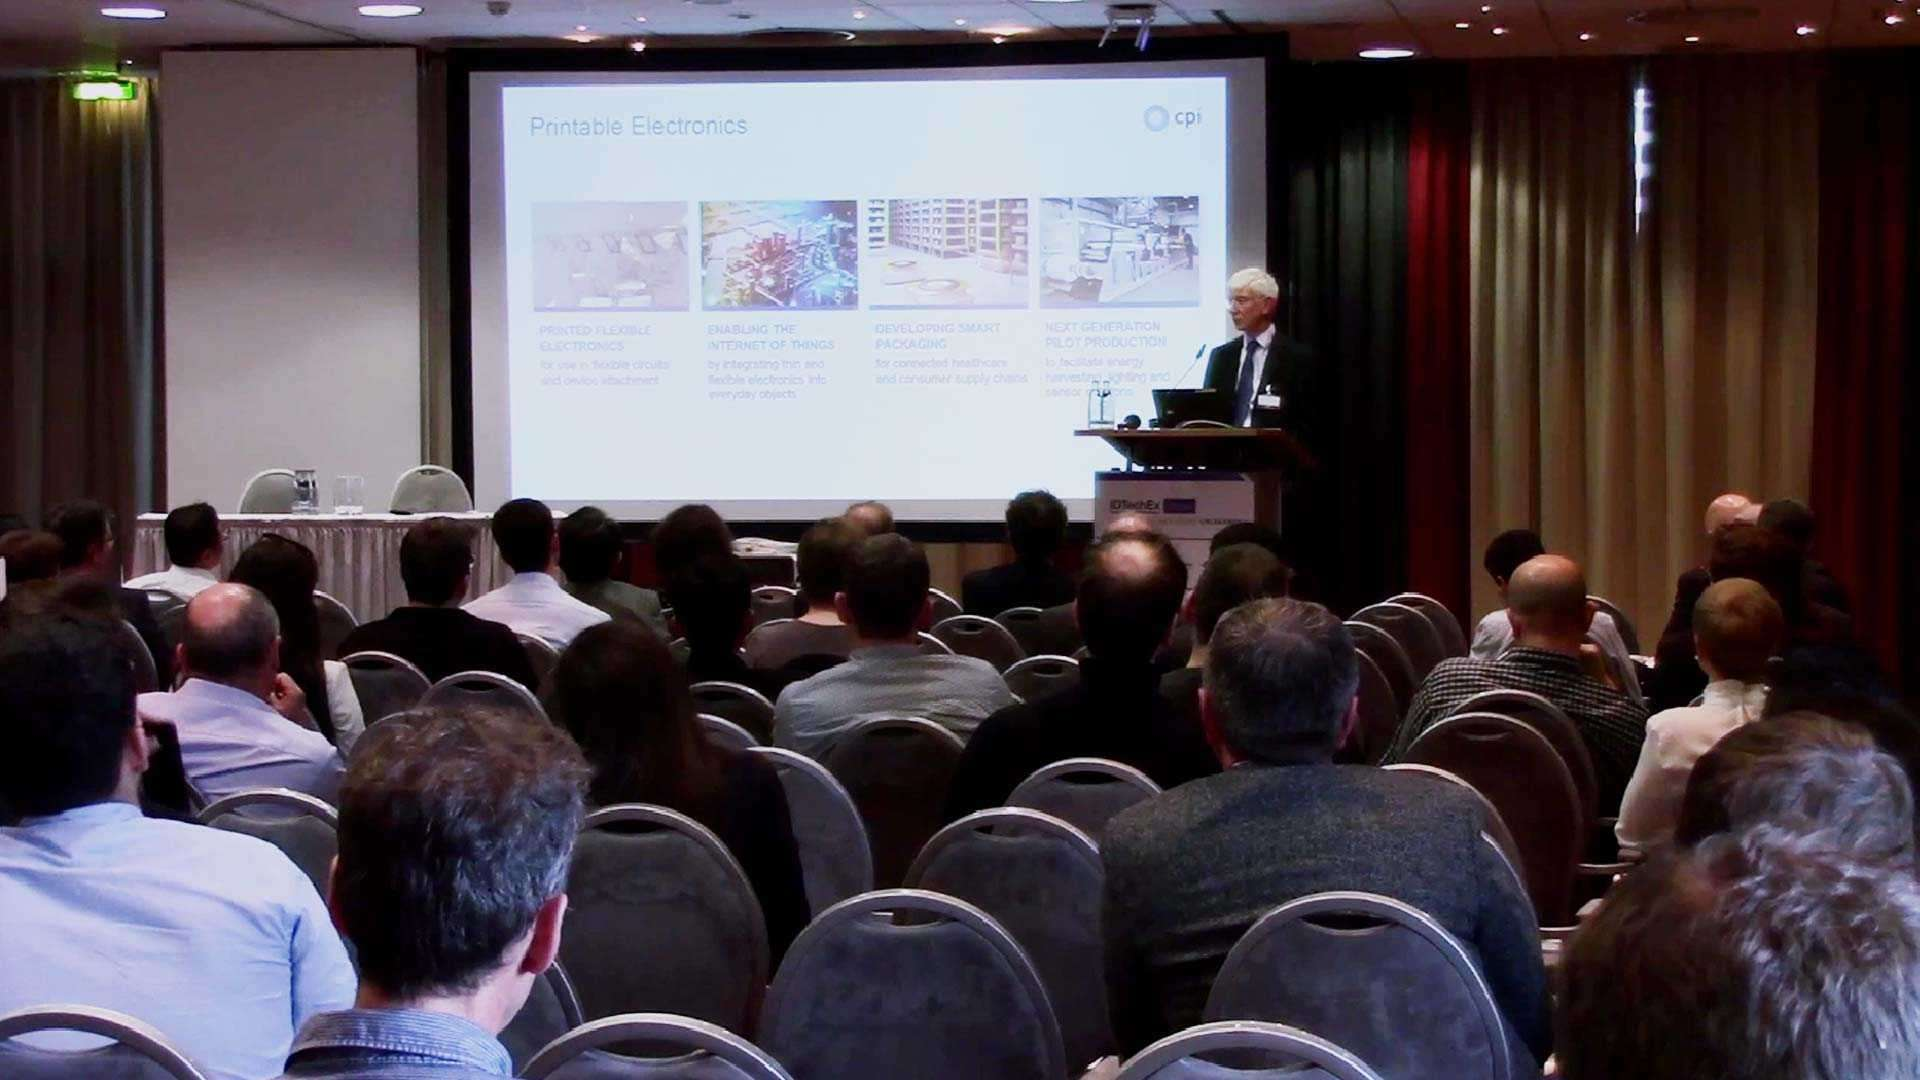 A photo Dr John Cocker, presenting to an audience of healthcare professionals and technology investors